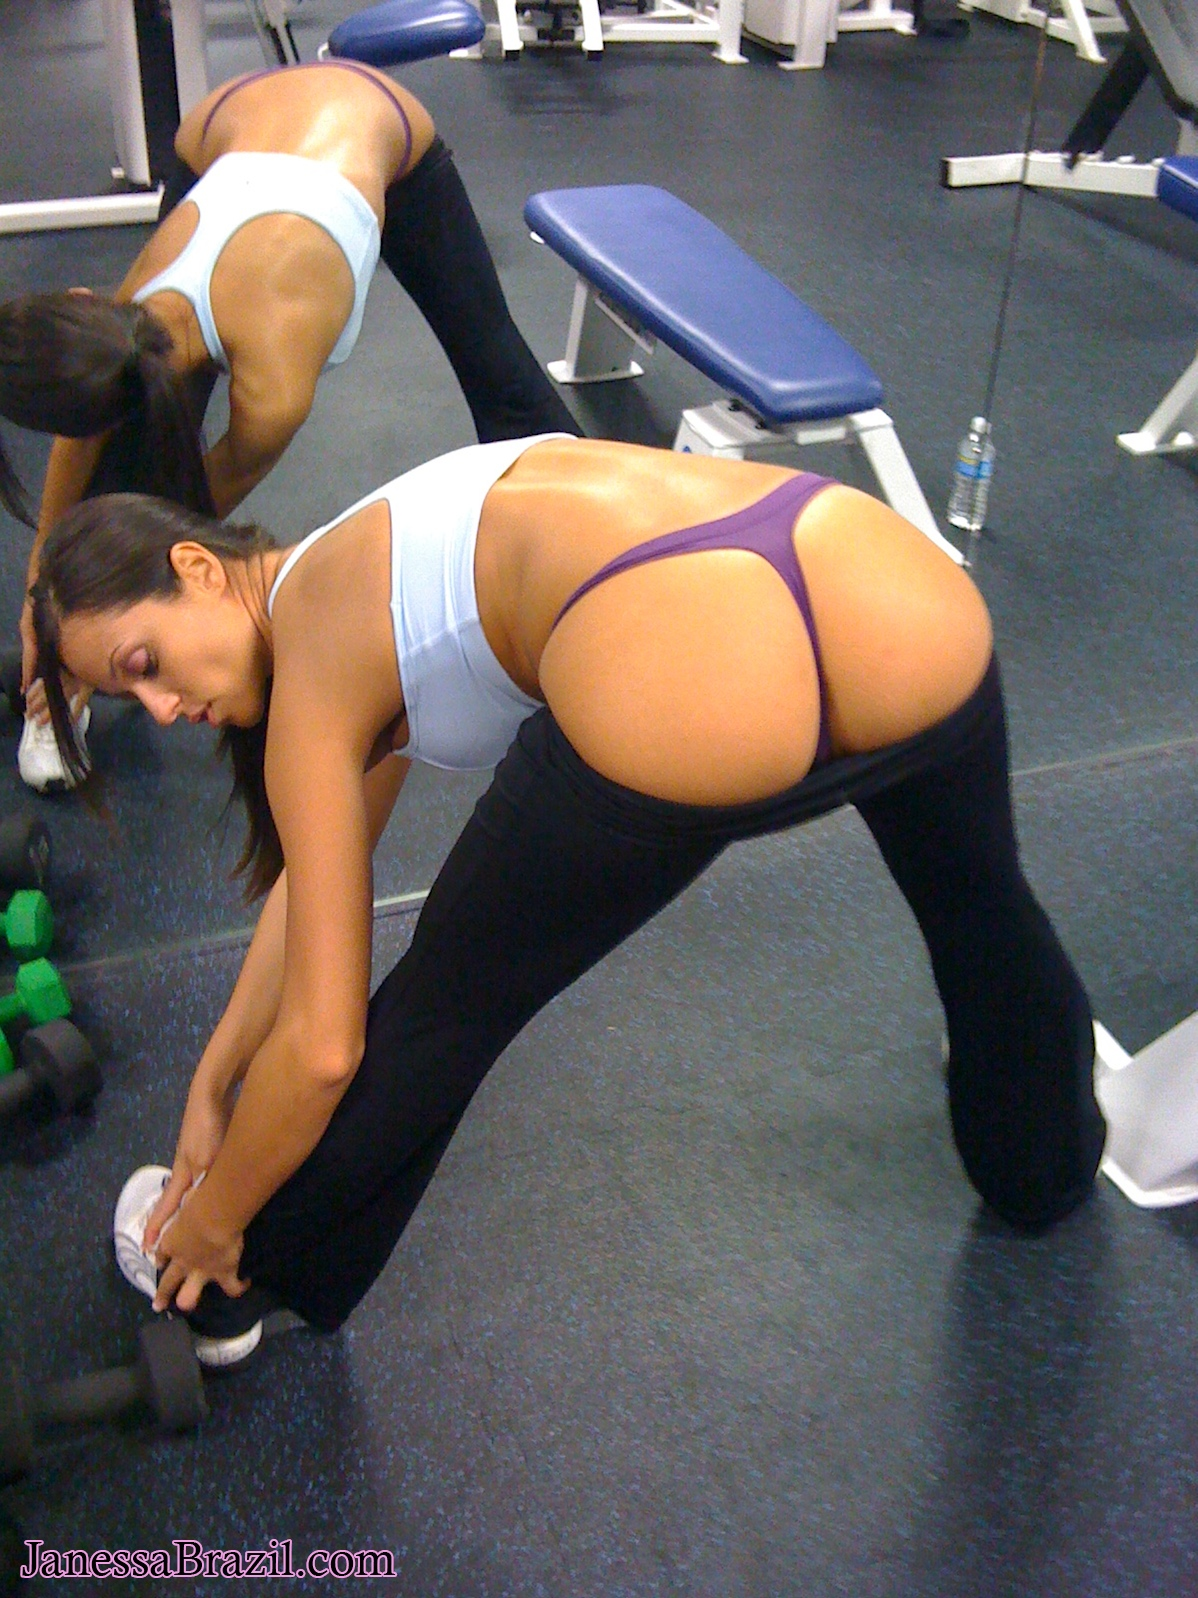 Janessa Brazil Nude Hot Gf College Girl At Gym Good